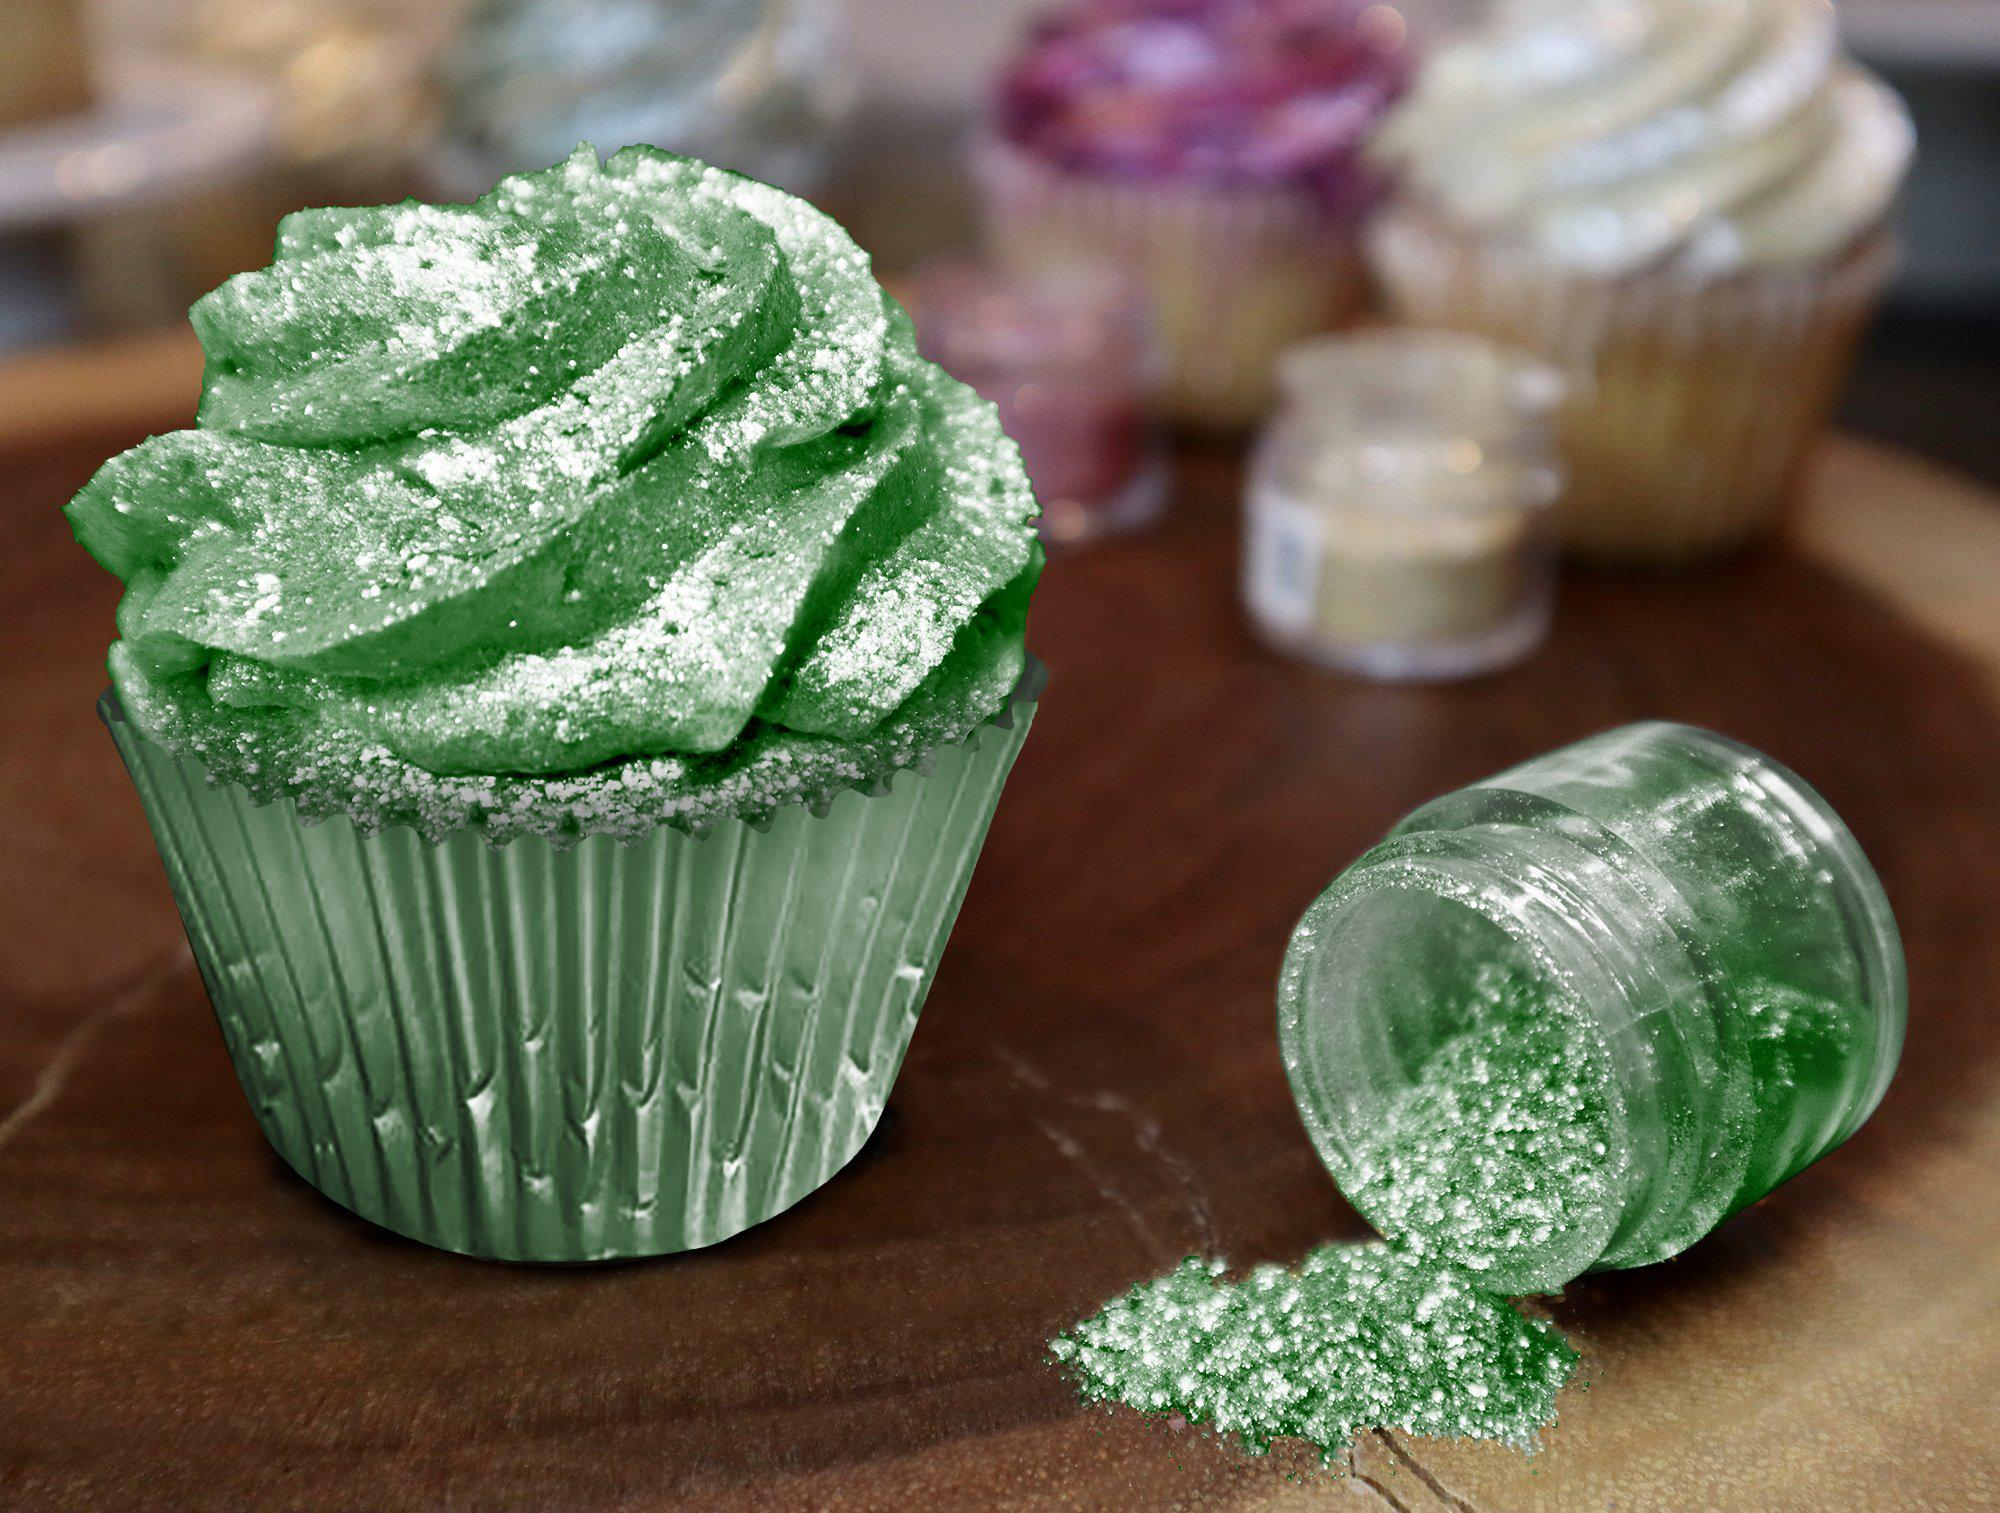 Green Edible Glitter | 100% Edible Tinker Dust  Edible Glitter | FDA Approved | #1 Site for Edible Glitter & Dust | Bakell.com